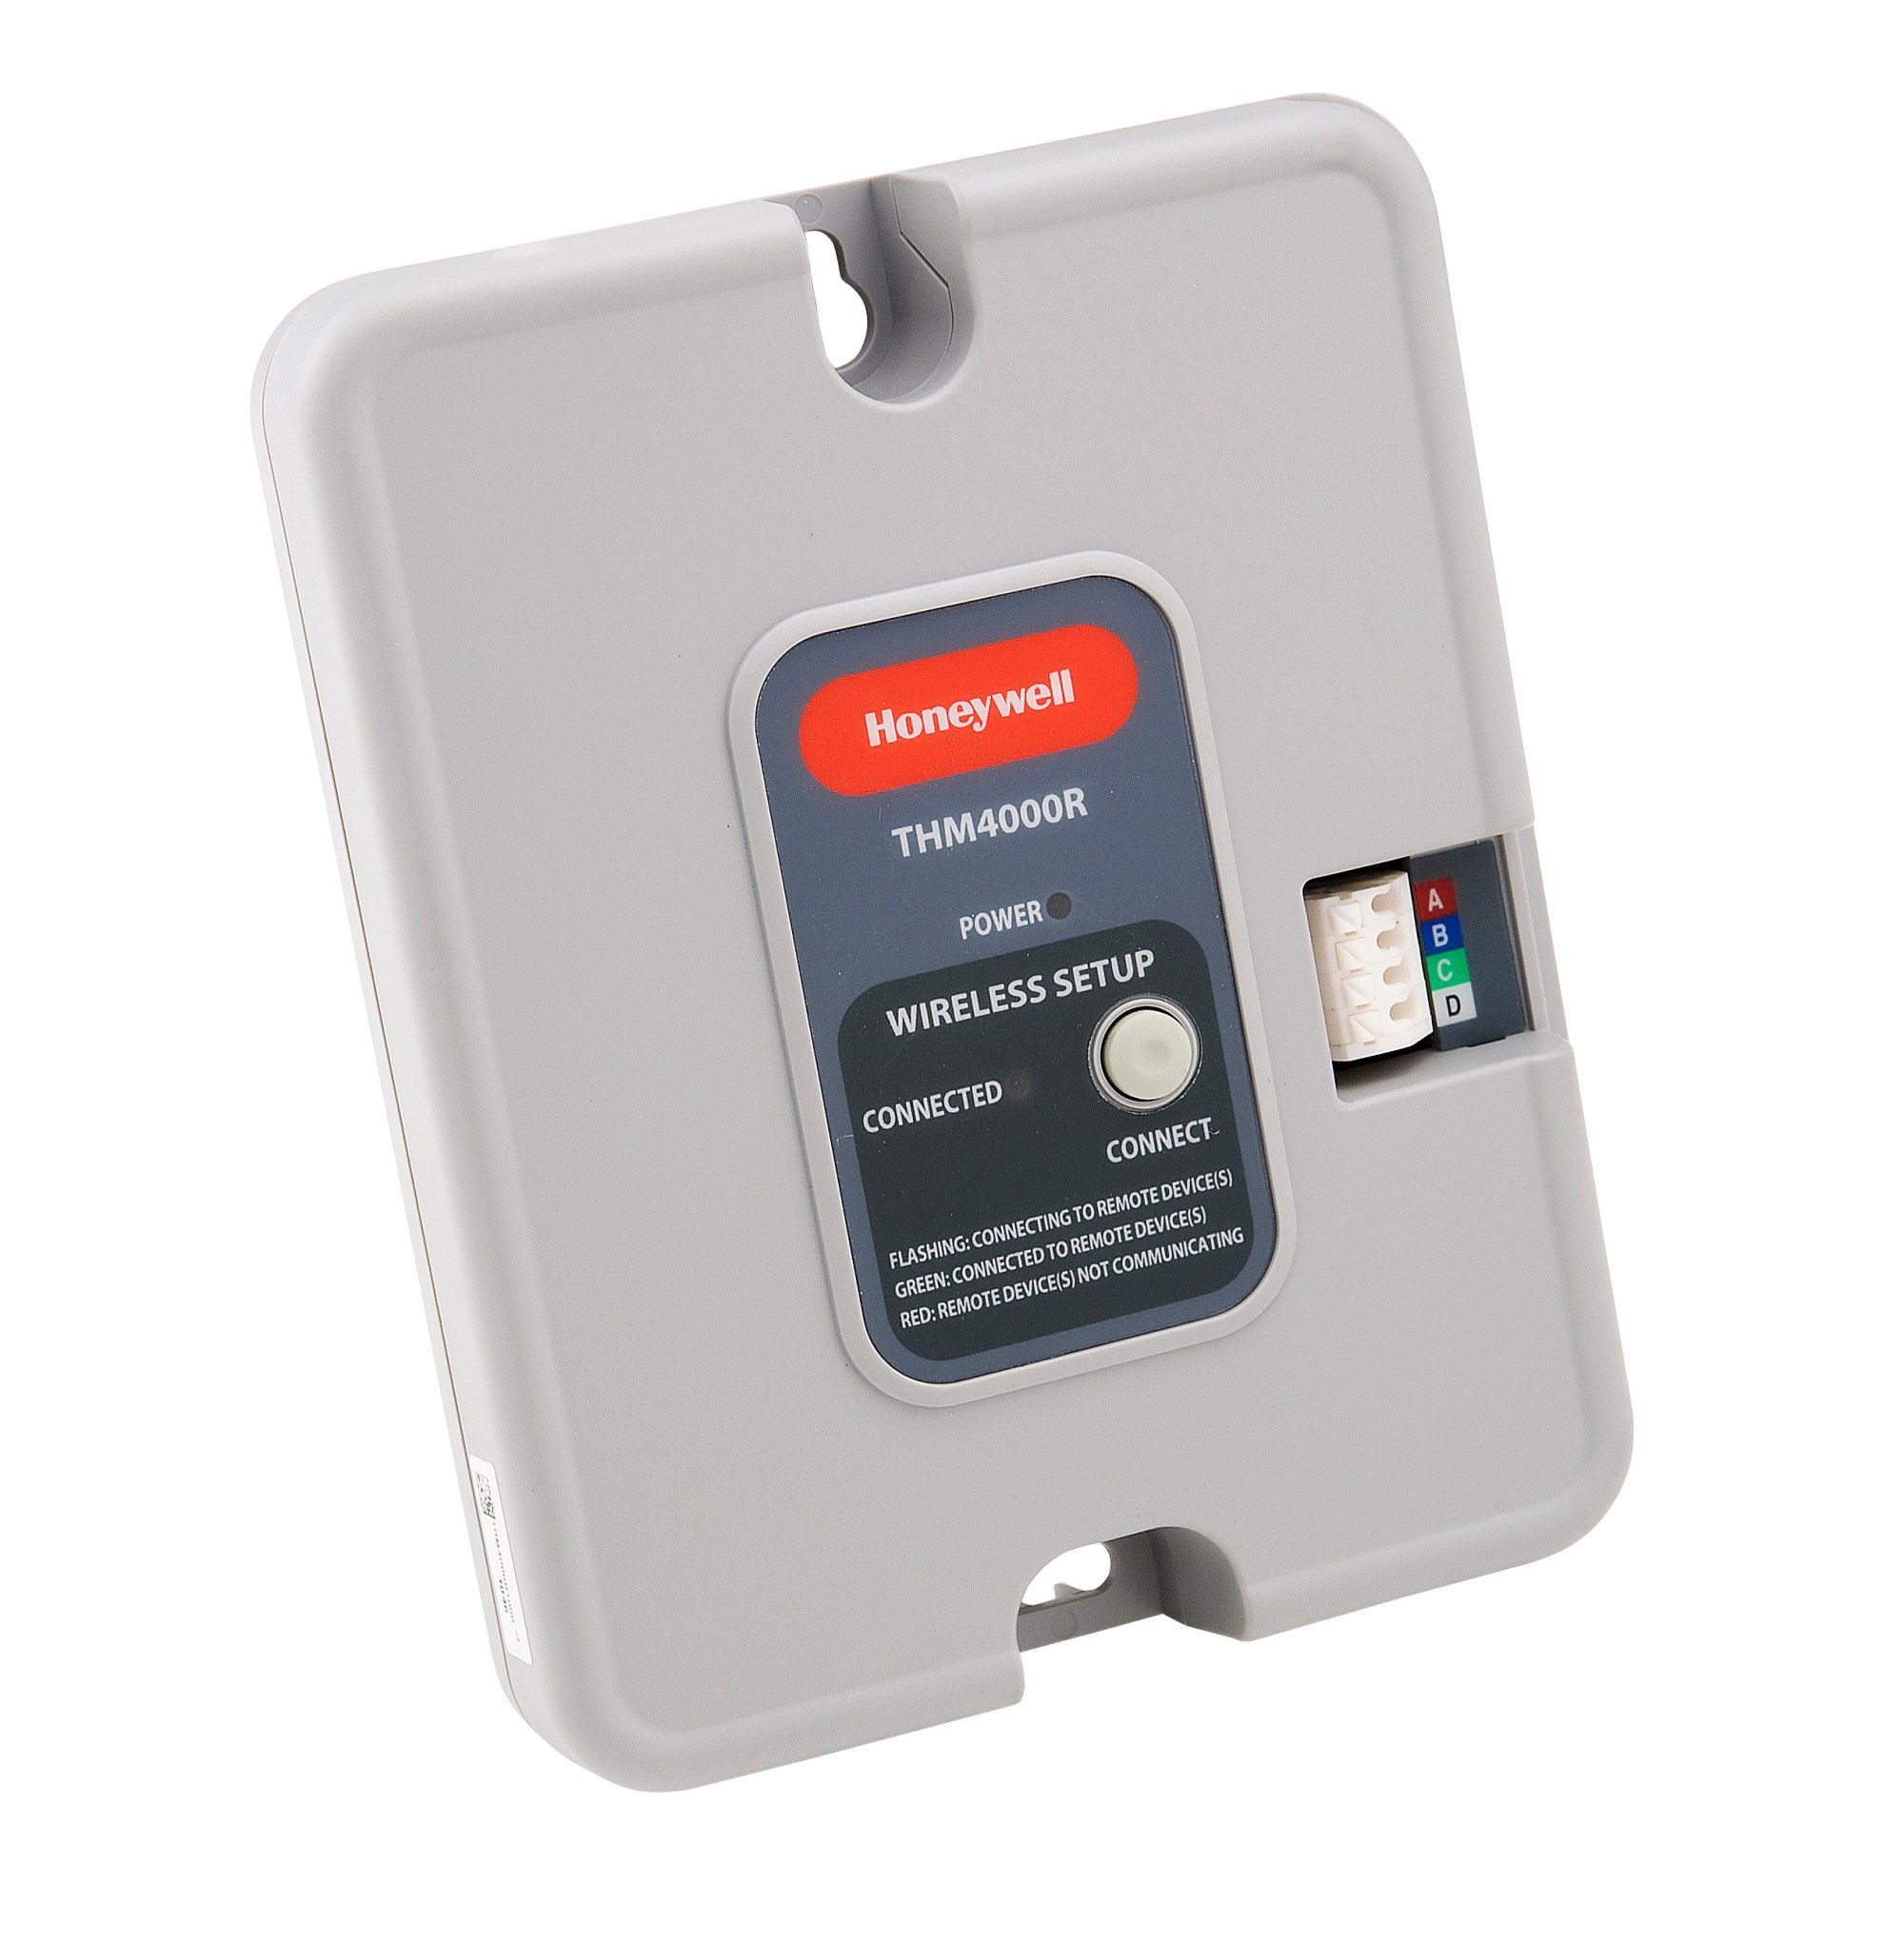 hight resolution of honeywell thm4000r1000 wireless adapter for use with honeywell truezone and truesteam products